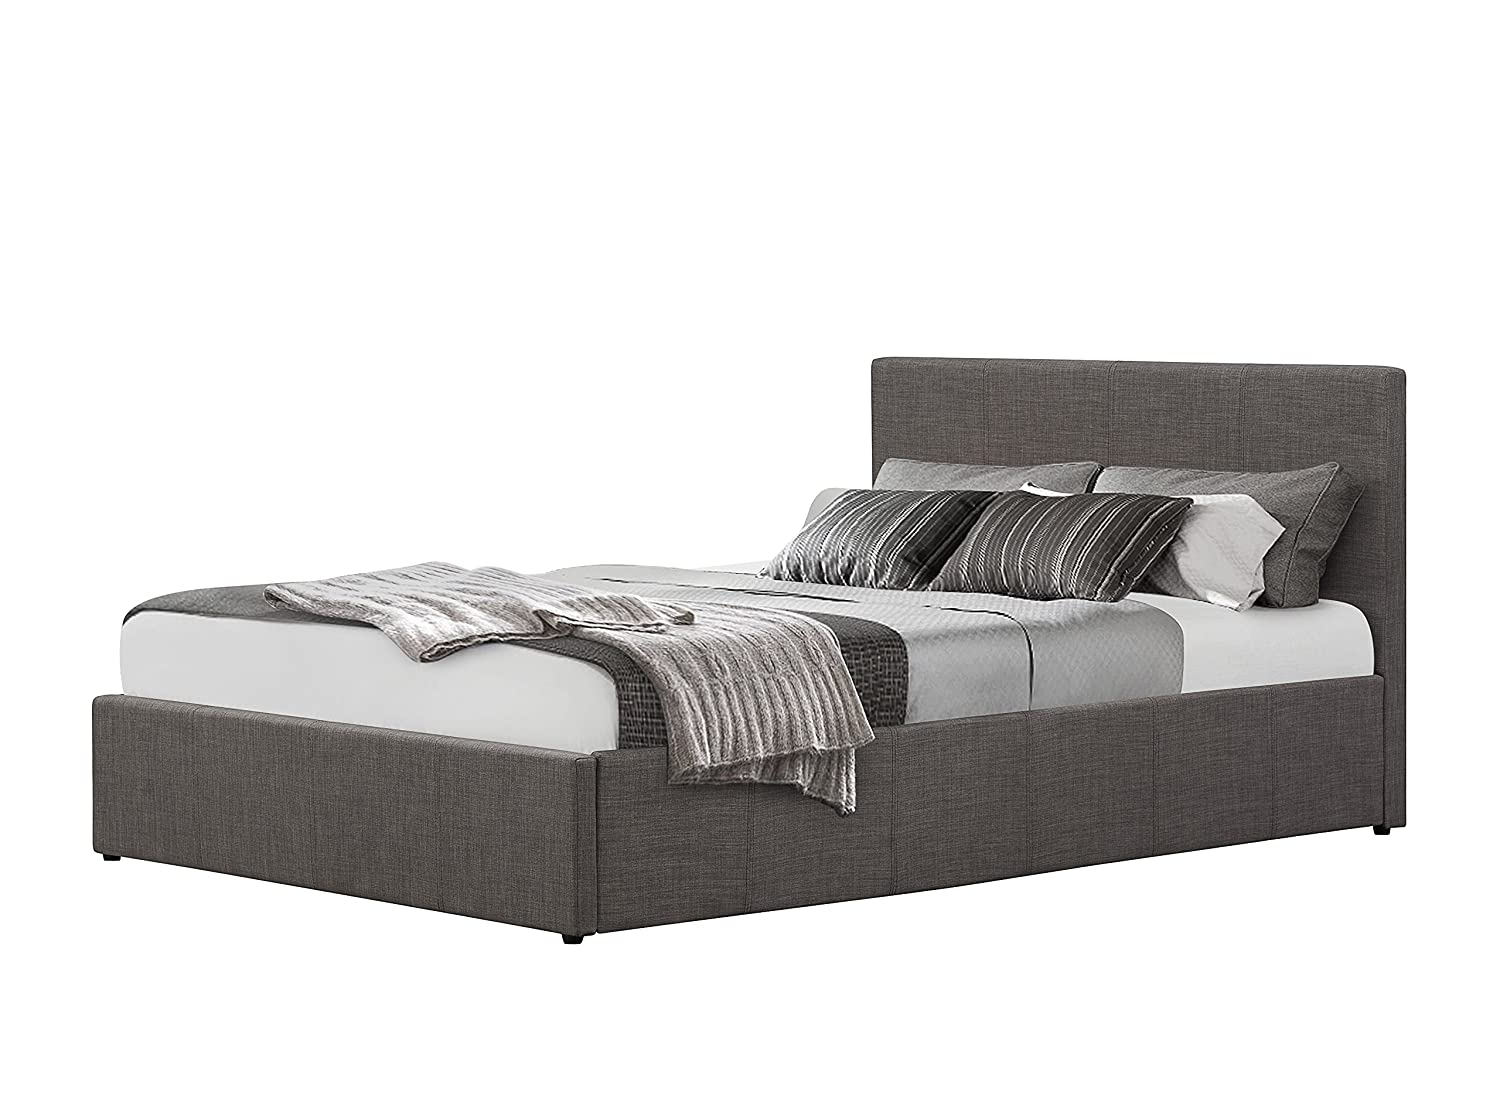 Birlea Berlin Ottoman Bed - Fabric, Grey, King Size: Amazon.co.uk ...